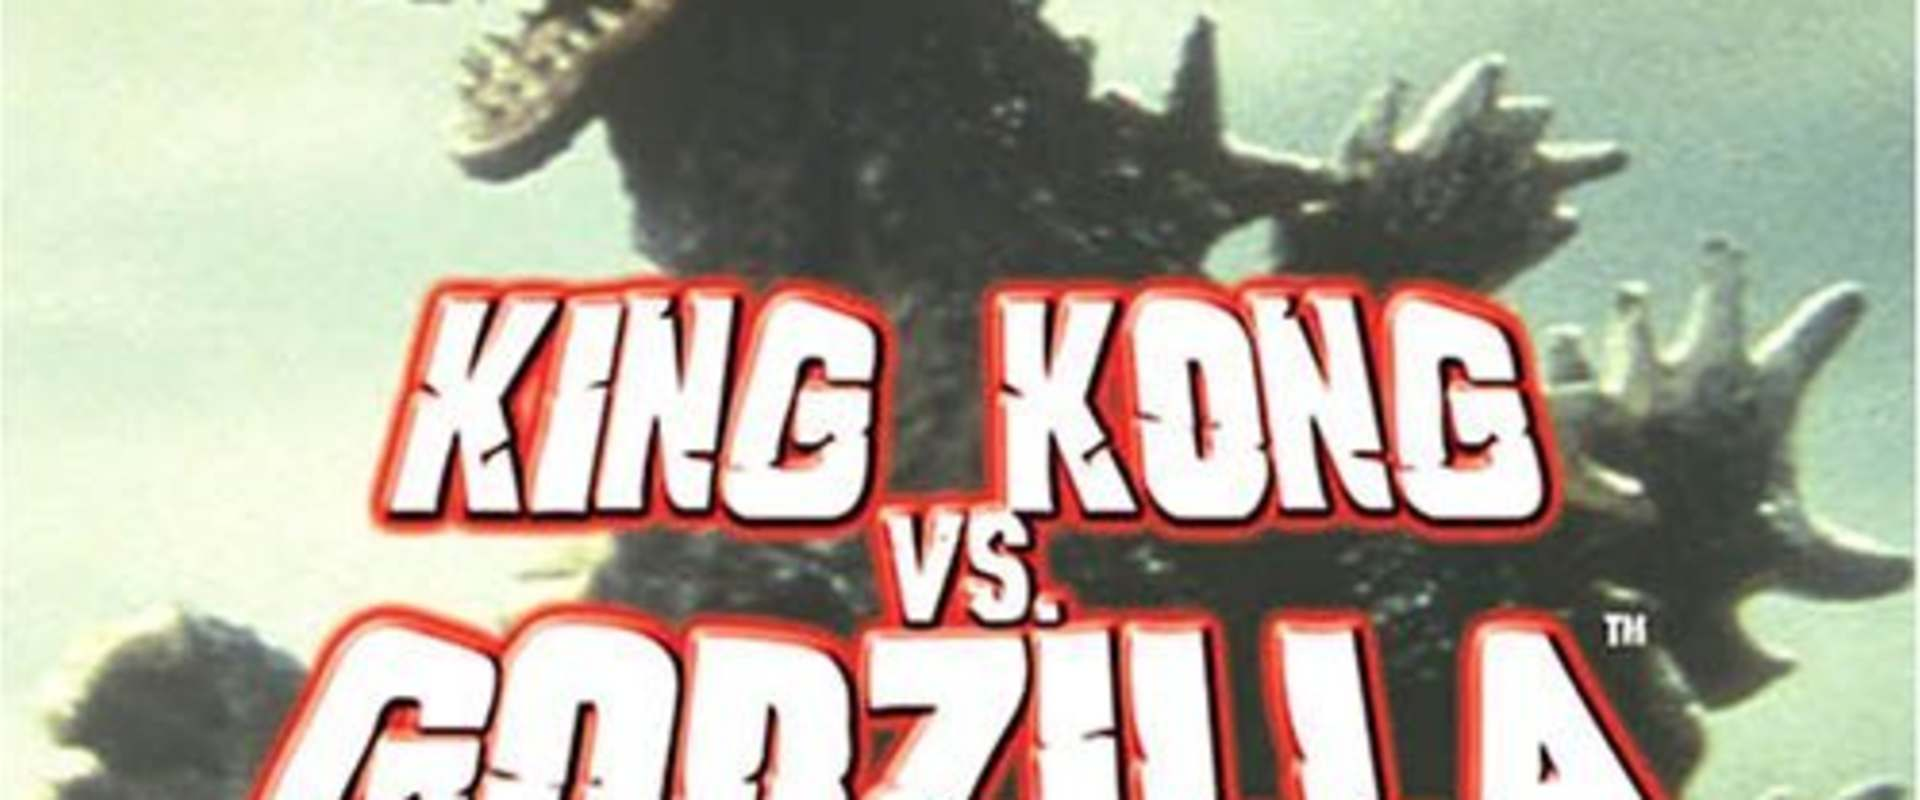 King Kong vs. Godzilla background 1